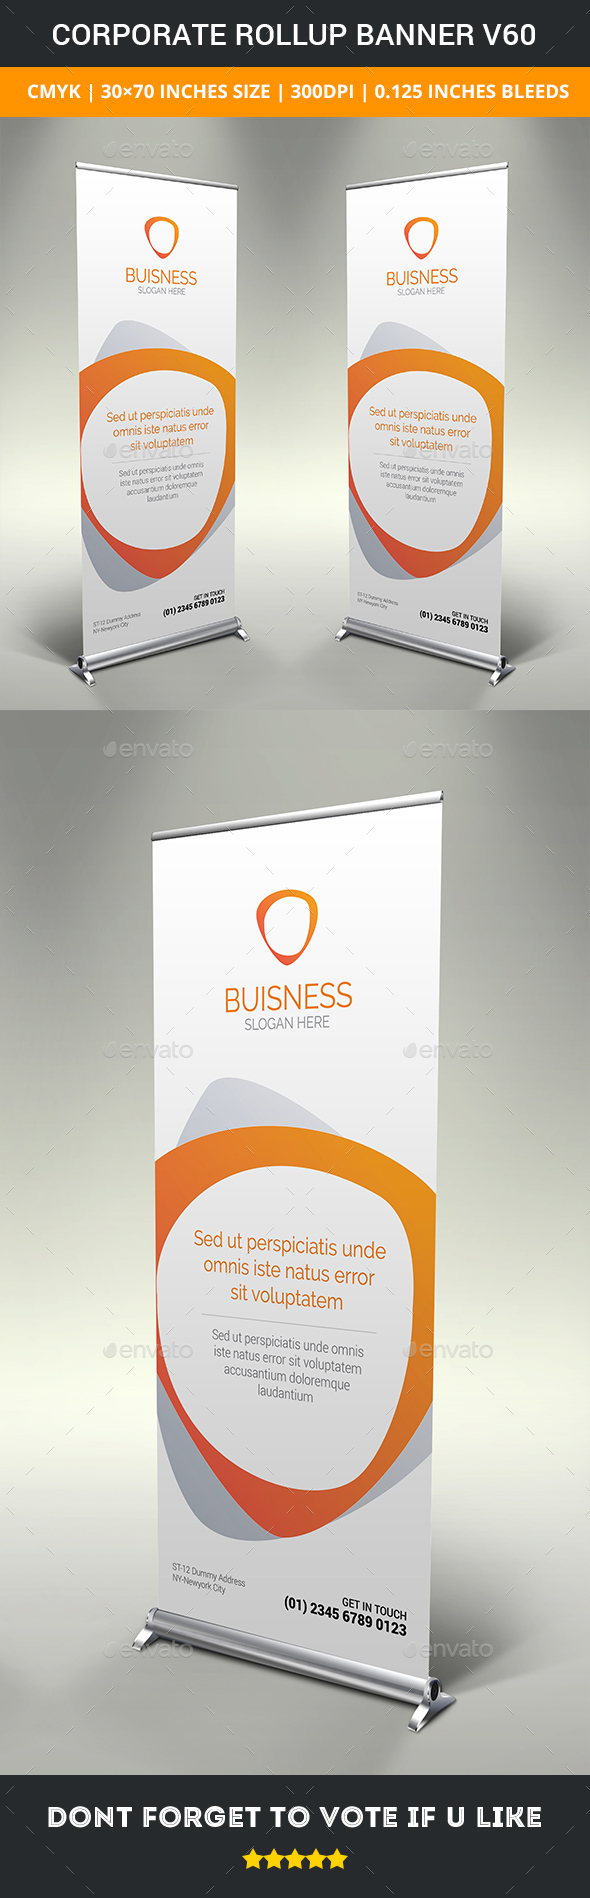 GraphicRiver Corporate rollup banner v60 20370684